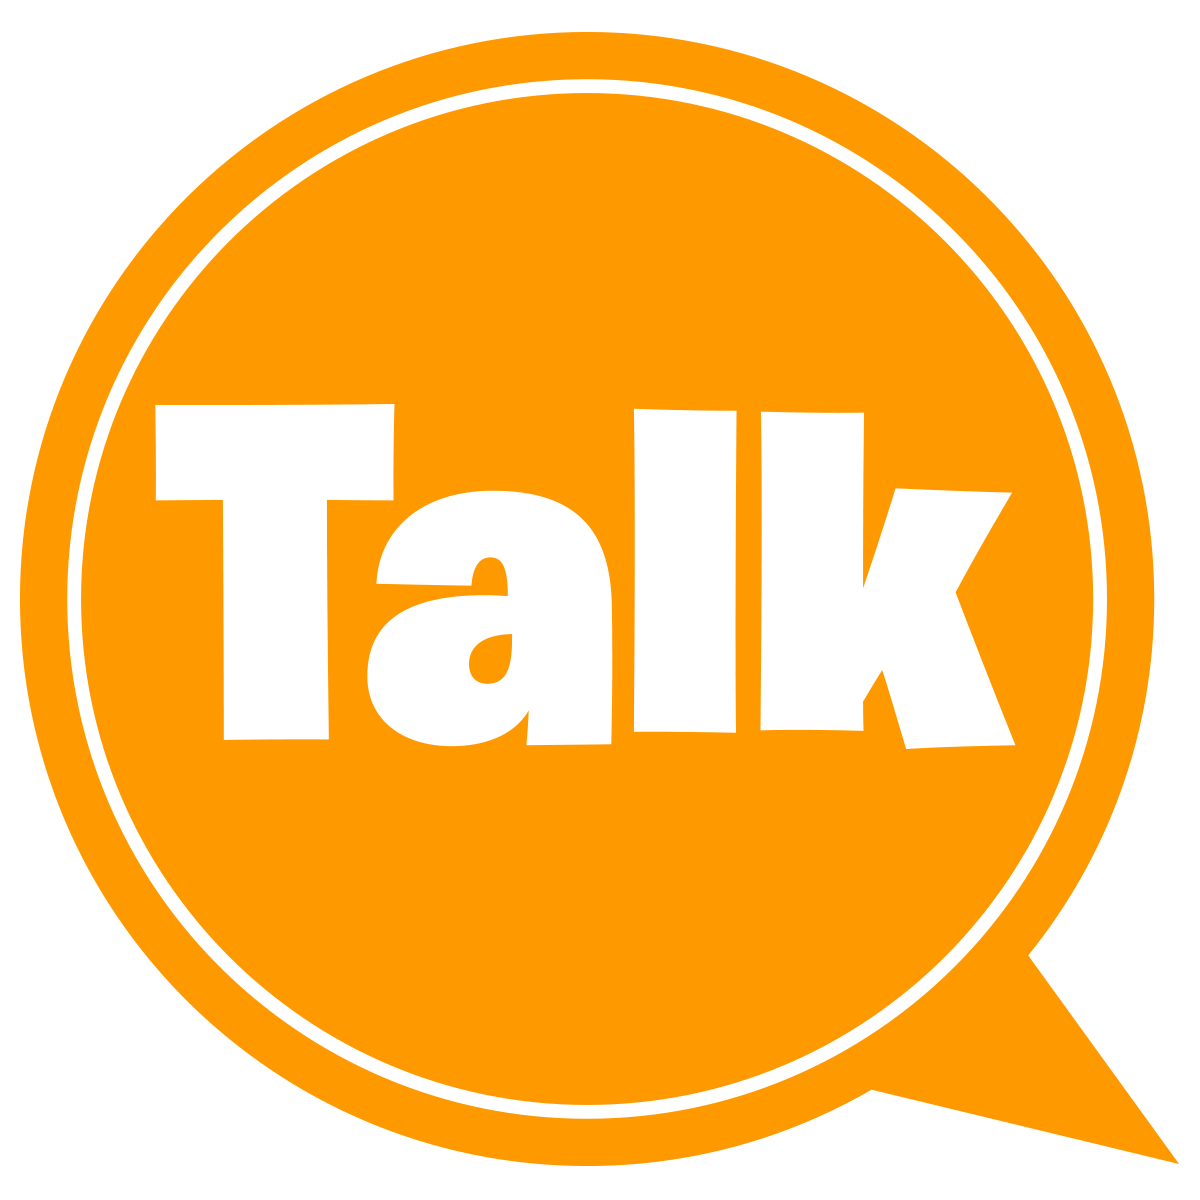 Dialog bubble containing the word 'talk'